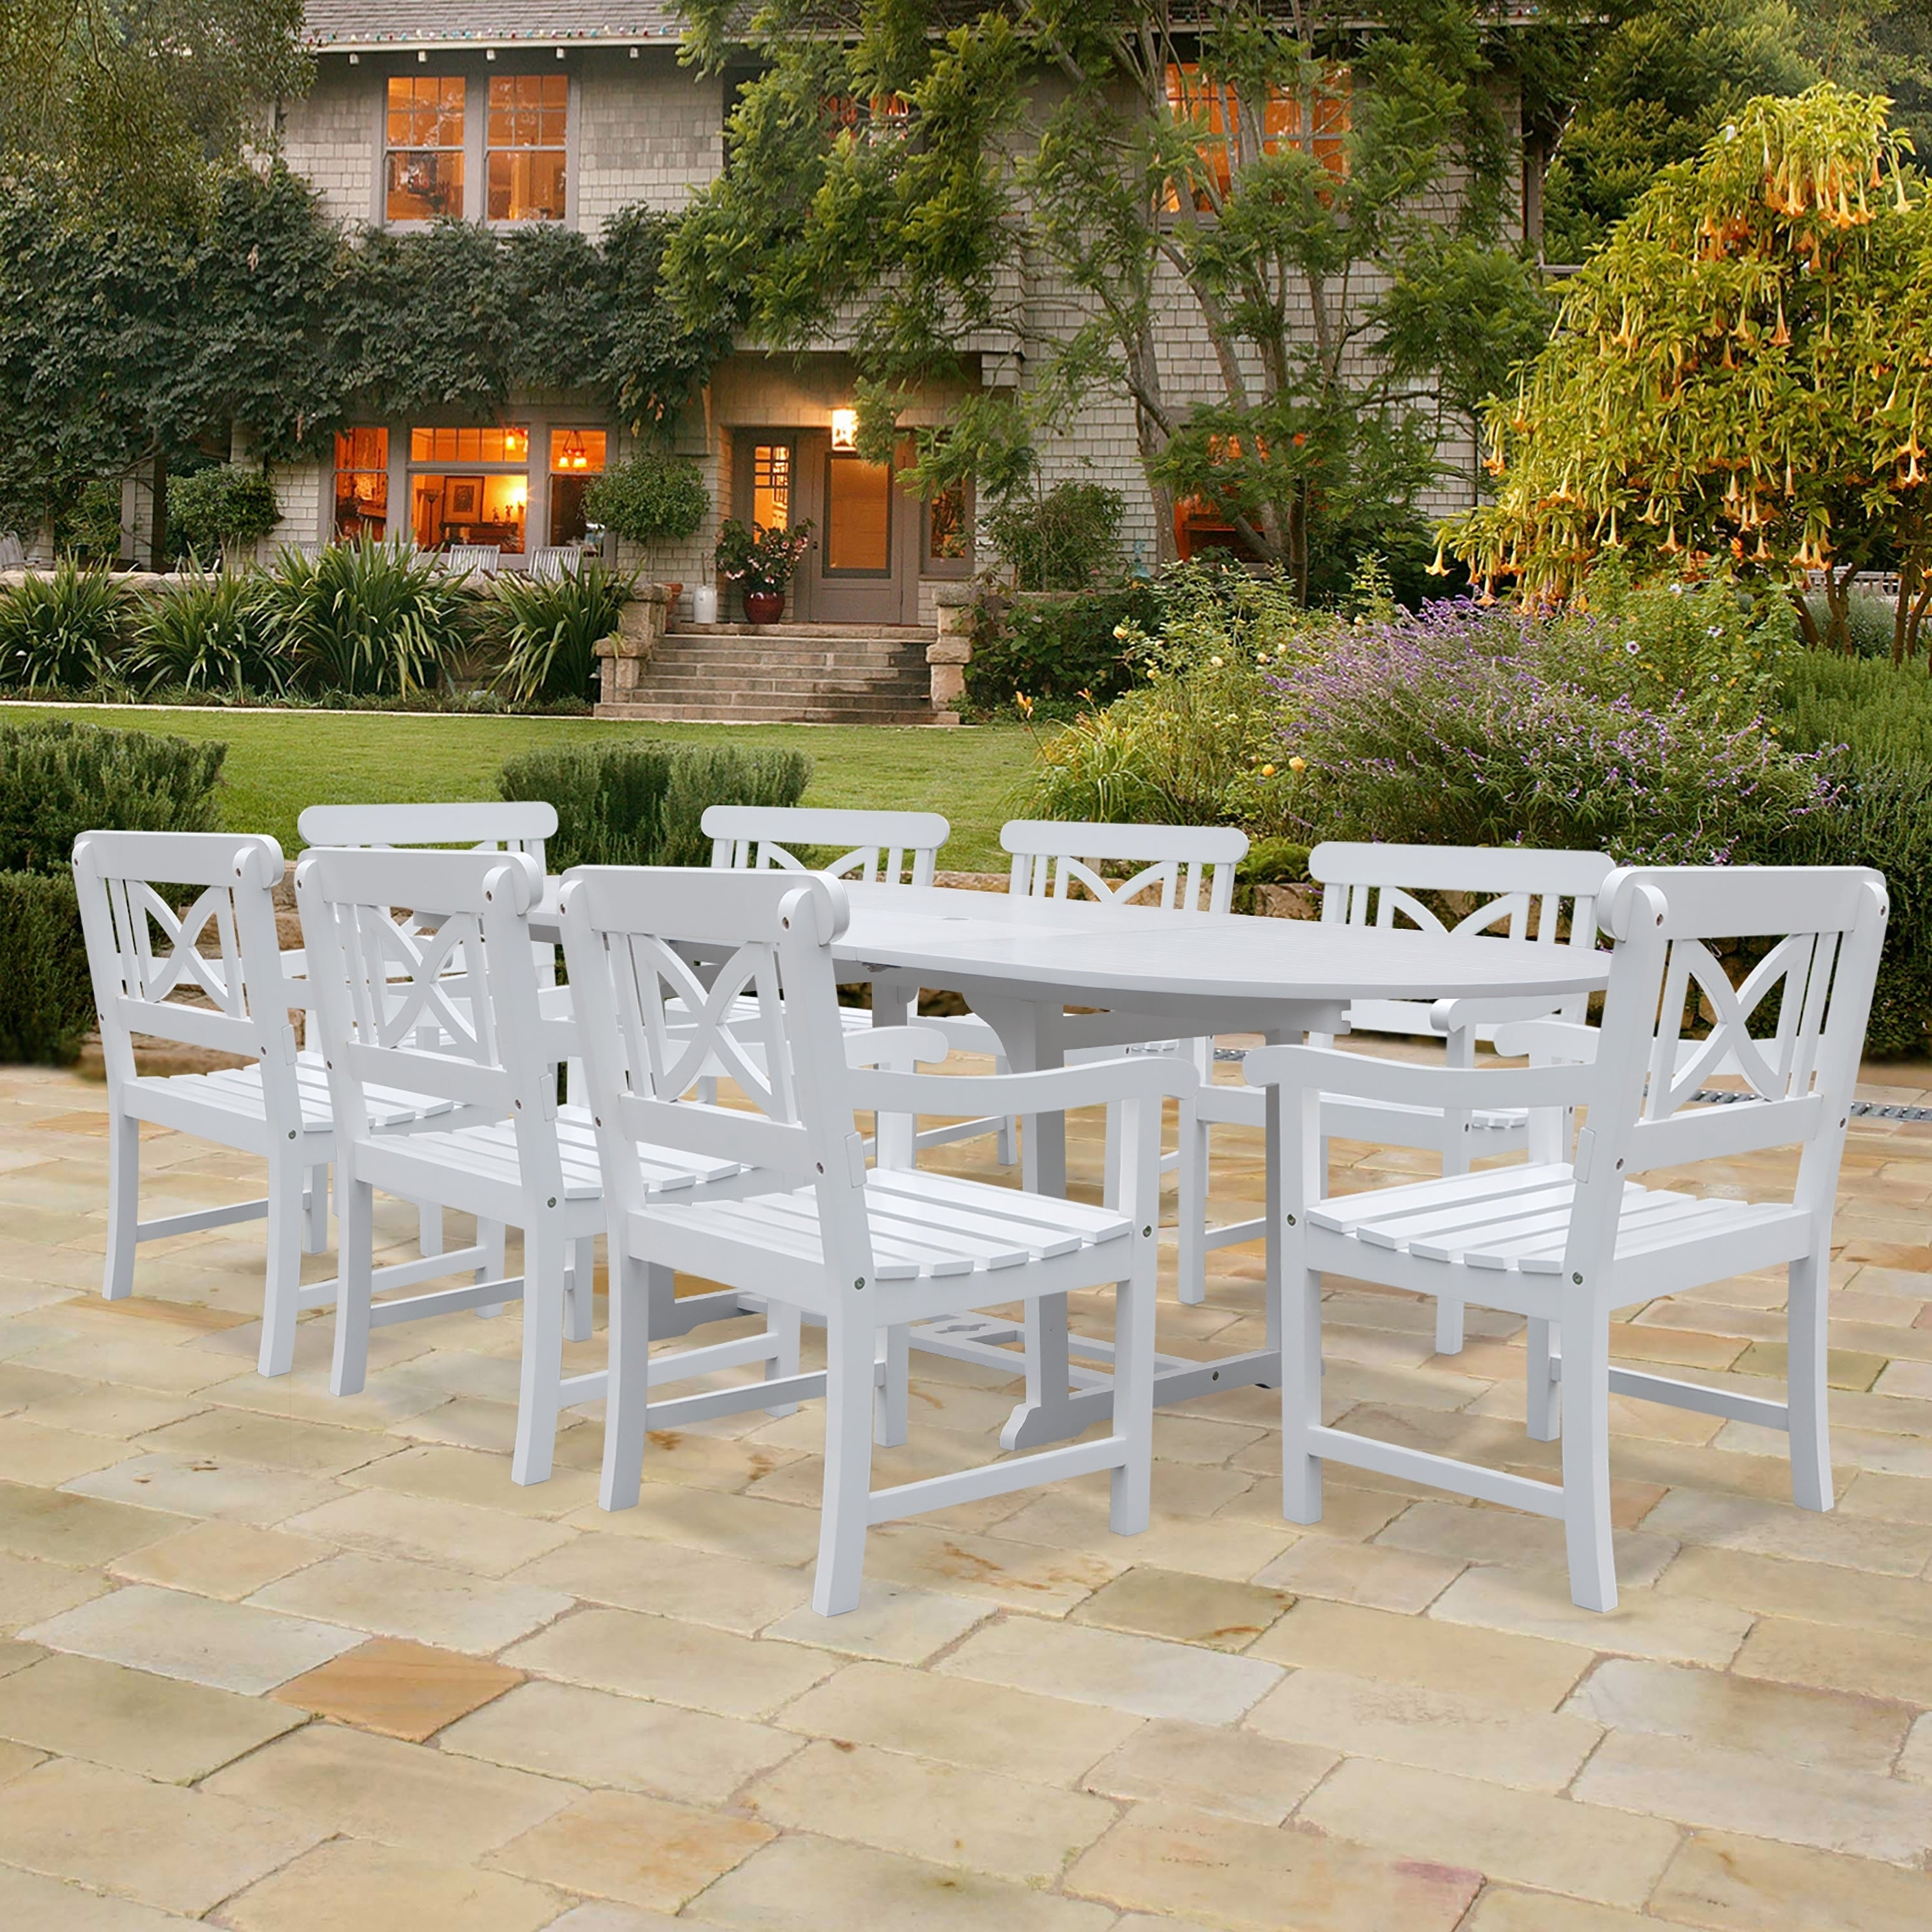 Vifah Bradley Oval Extension Table and Cross-Back Armchair Outdoor Wood Dining Set (Outdoor Furniture), White, Size 9-Piece Sets, Patio Furniture